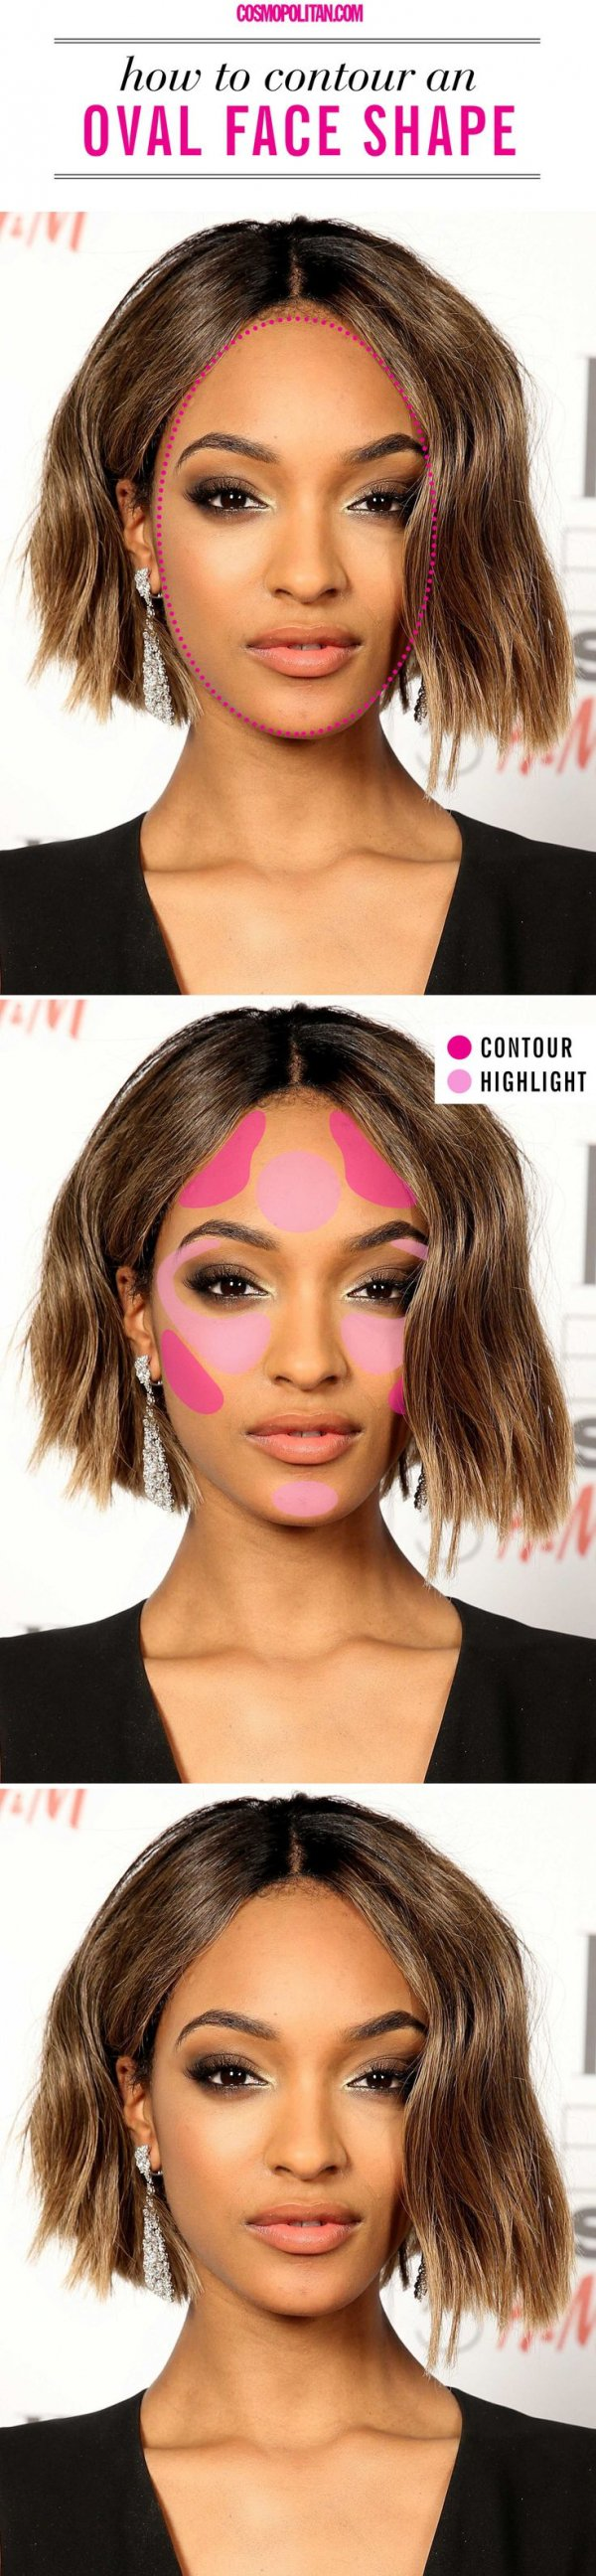 How to Contour if You Have an Oval Face Shape